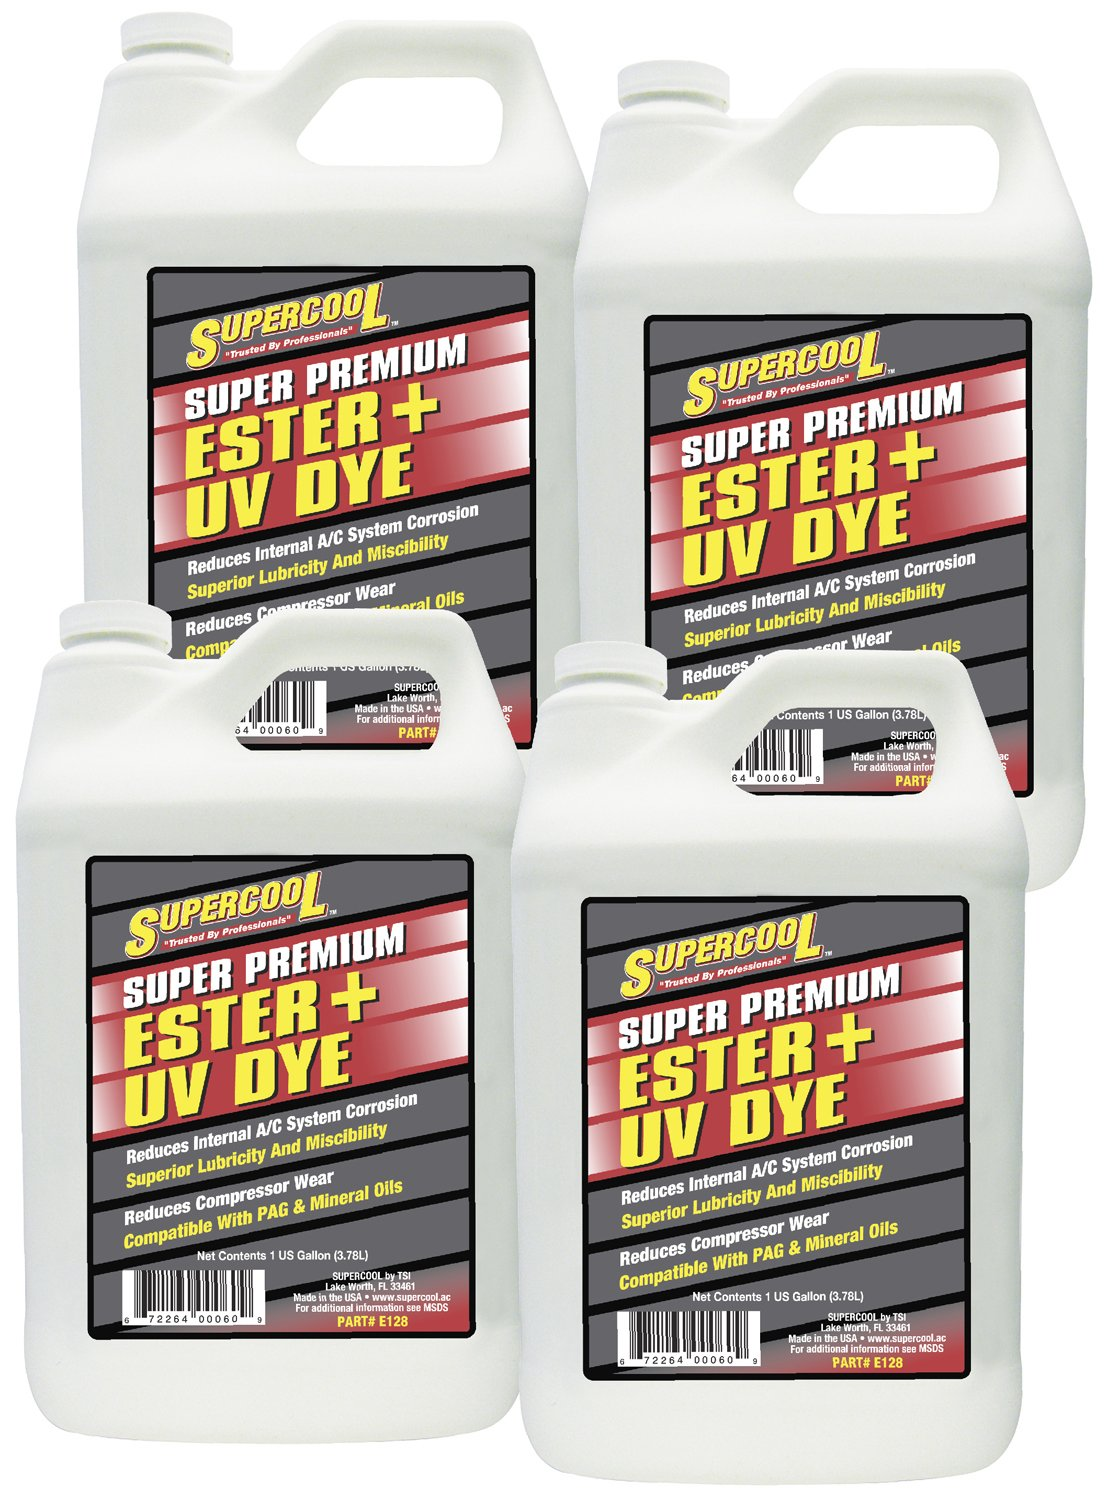 TSI Supercool E128-4CP Ester Oil Plus U/V Dye - 1 gallon, 4 Pack by TSI Supercool